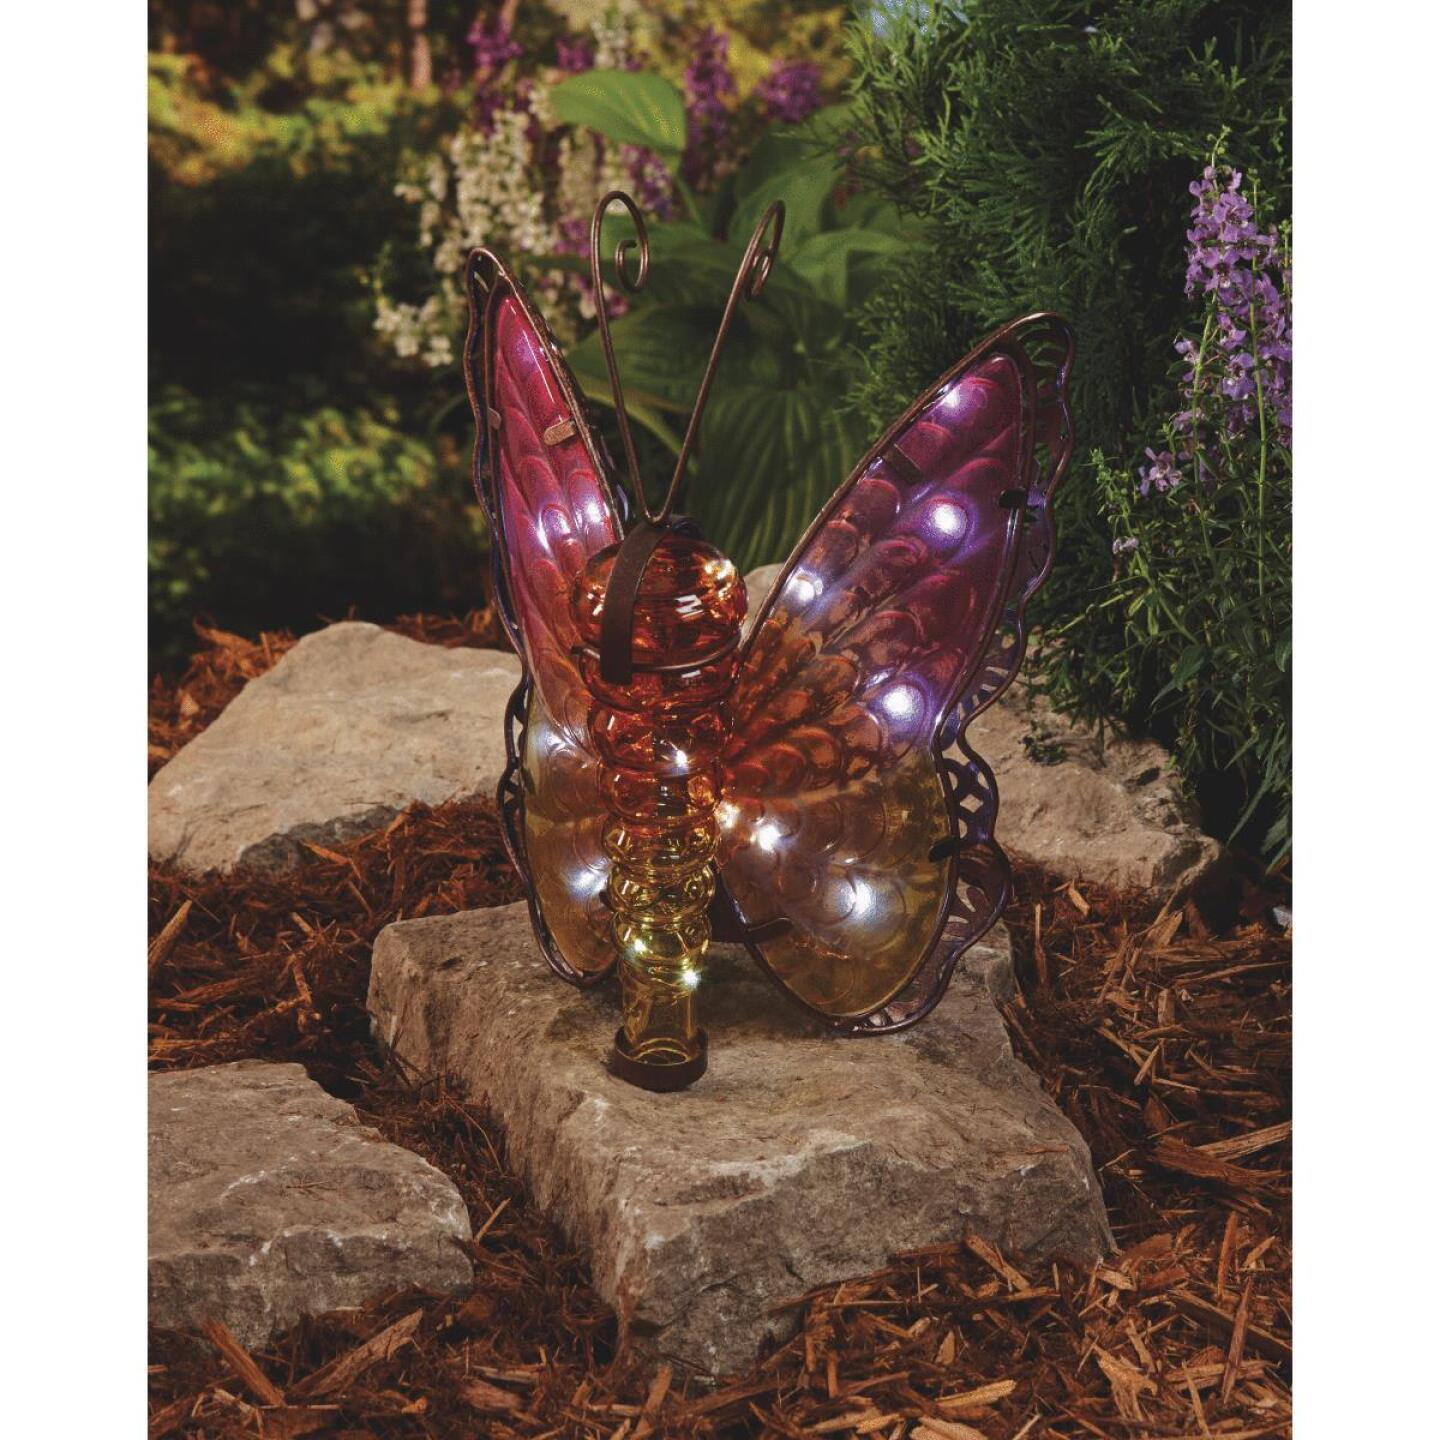 Outdoor Expressions 11.25 In. H. x 8 In. Dia. Butterfly Solar Light Image 4